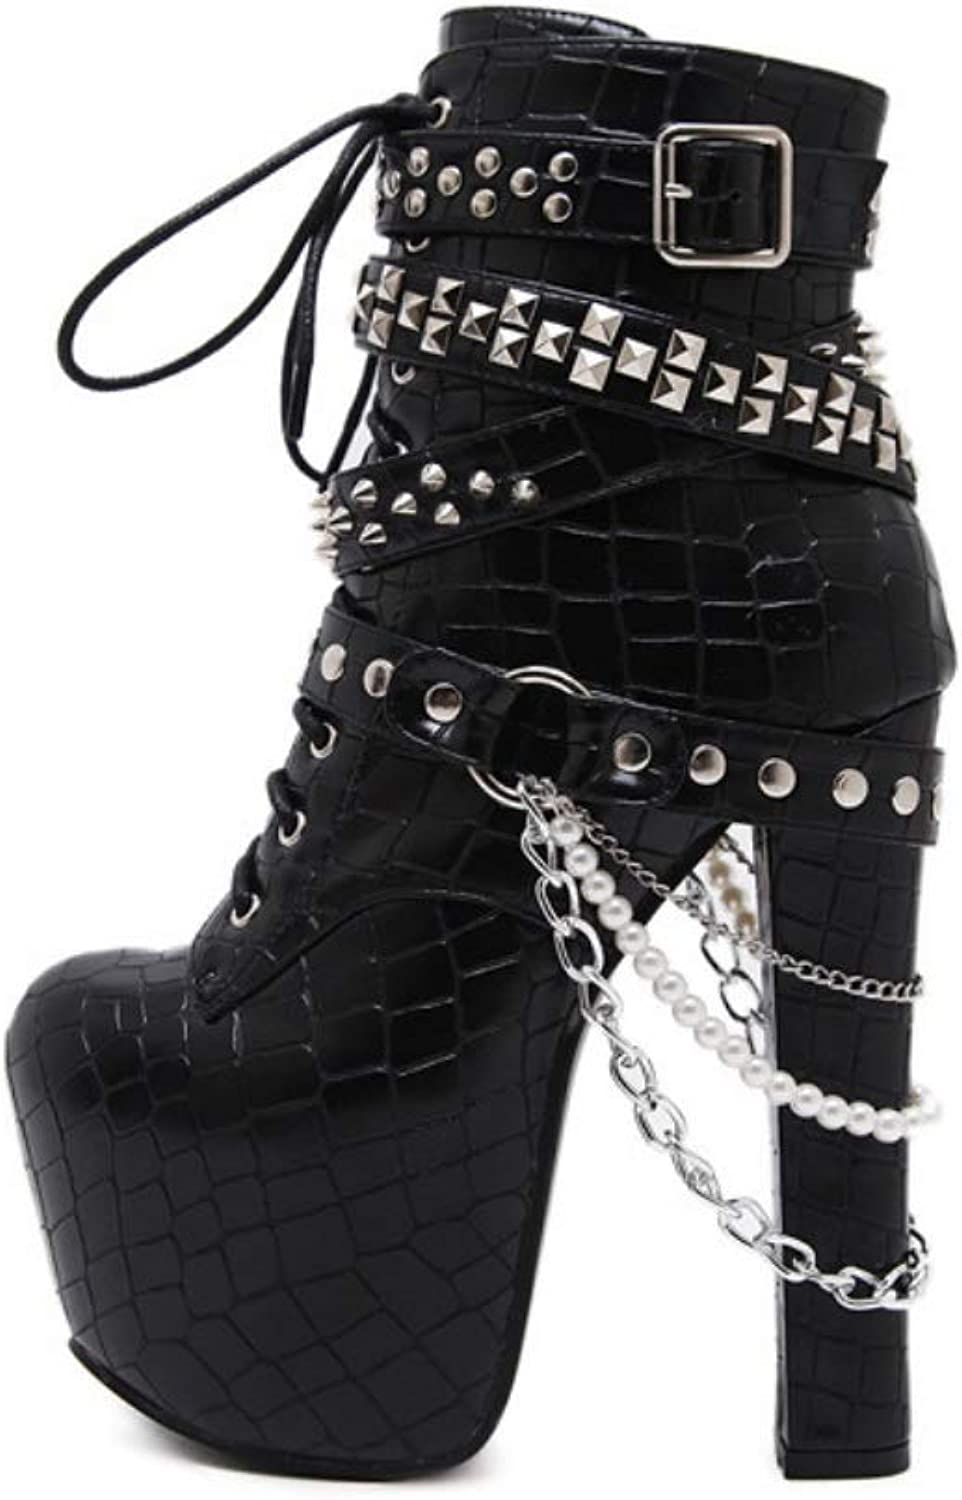 Show Story Punk Buckle Bone Heels Platform Ankle Boots Women's High Heel Fashion Mid Calf Boots Solid Rivet shoes Wedding Party Dress Boots